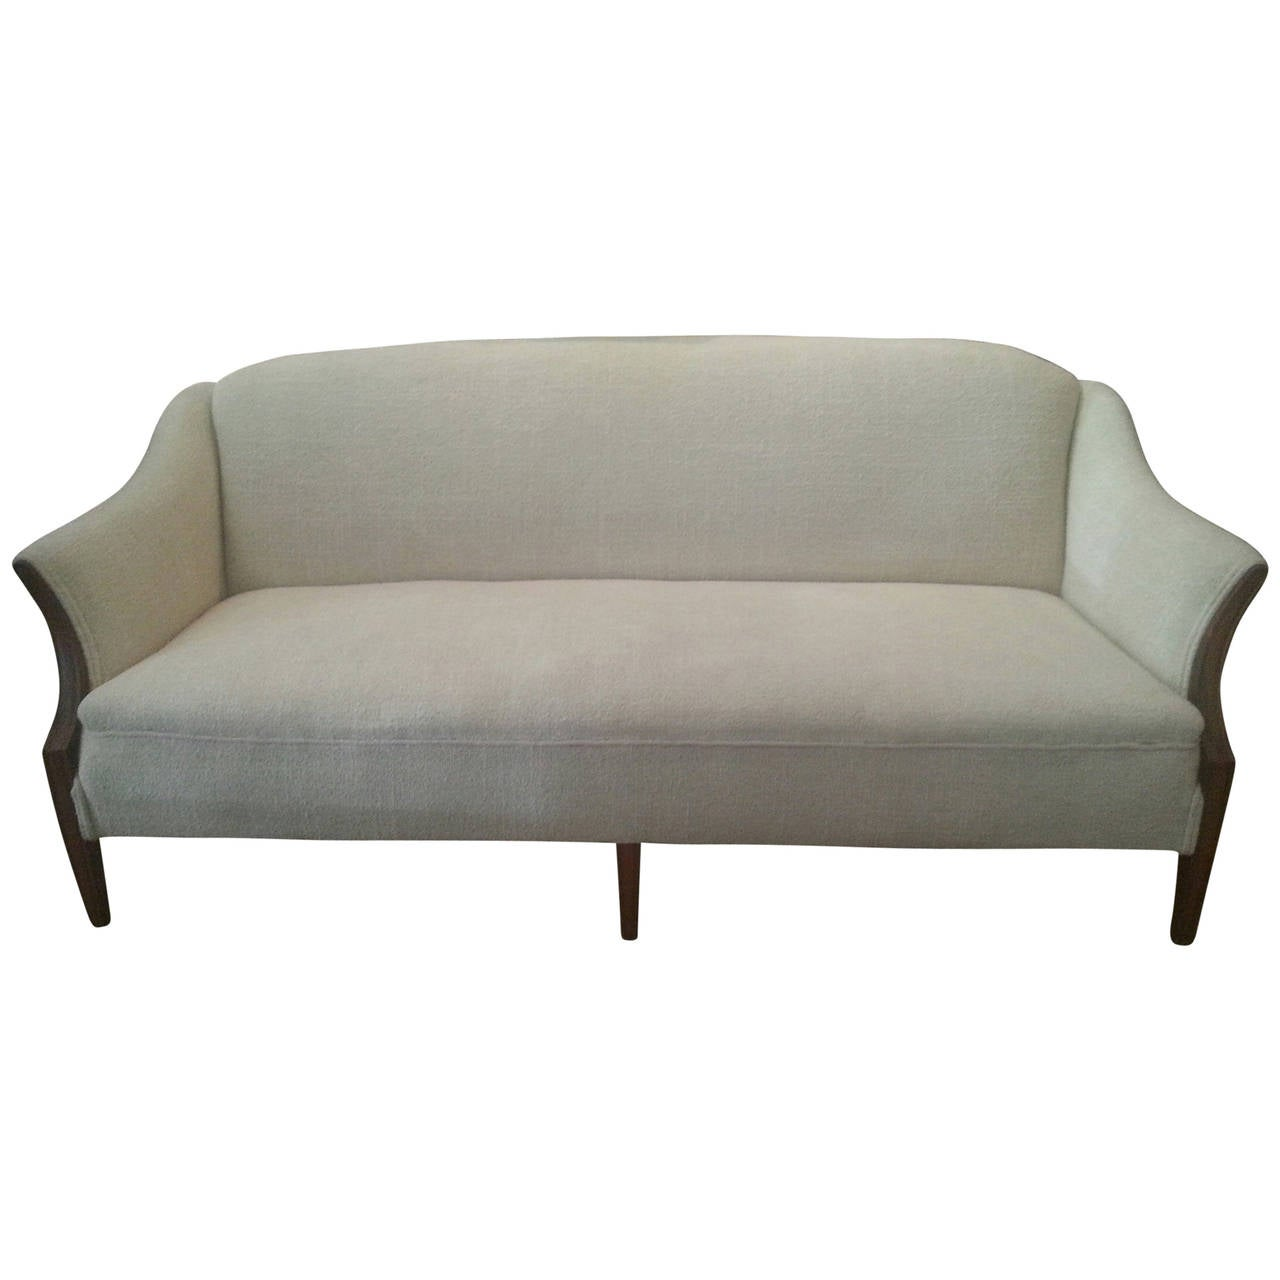 mid century modern sheraton style sofa at 1stdibs. Black Bedroom Furniture Sets. Home Design Ideas